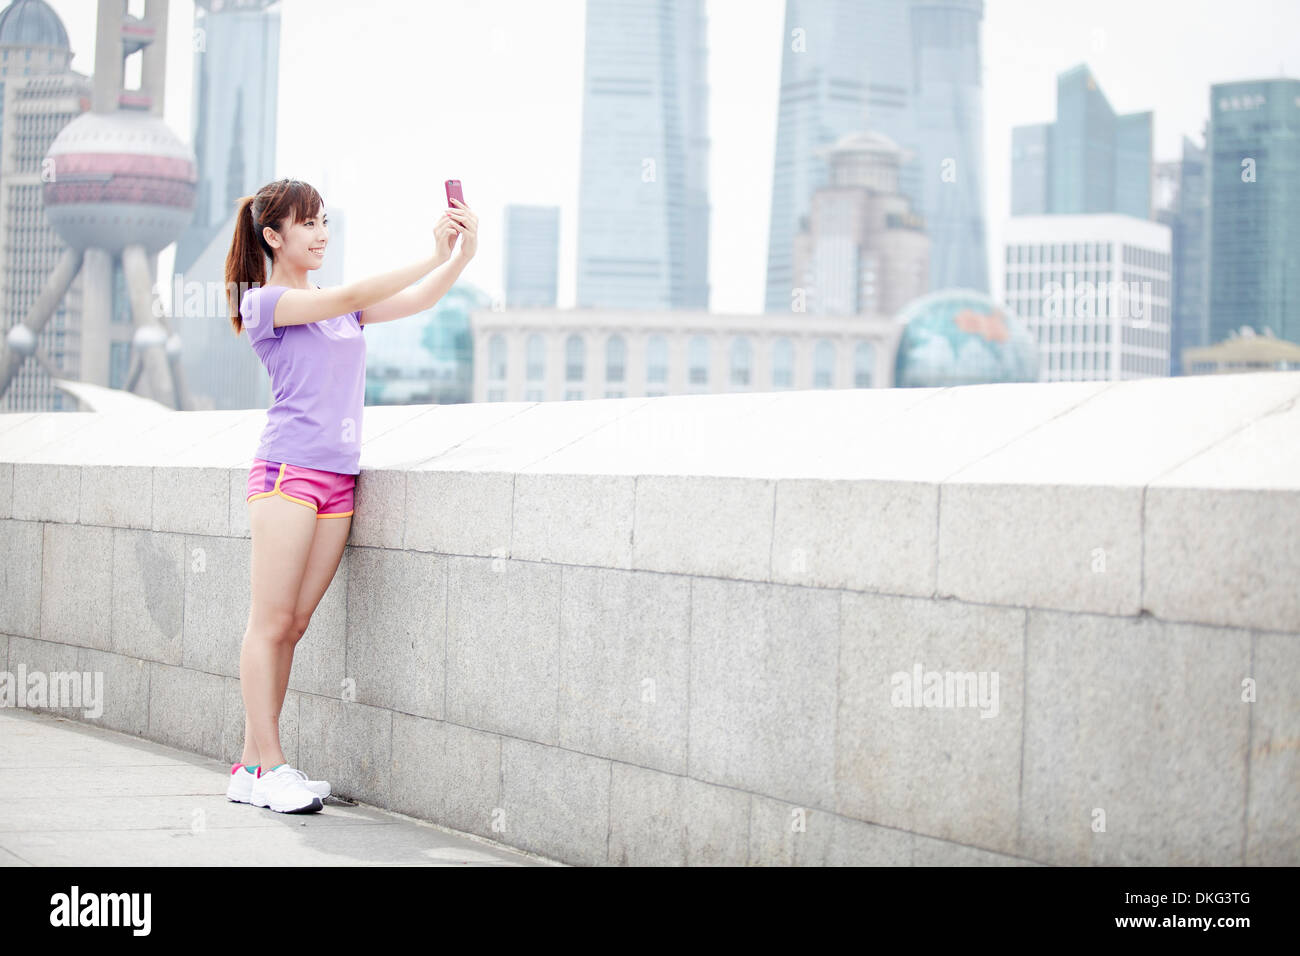 Young woman taking photograph in Shanghai, China - Stock Image